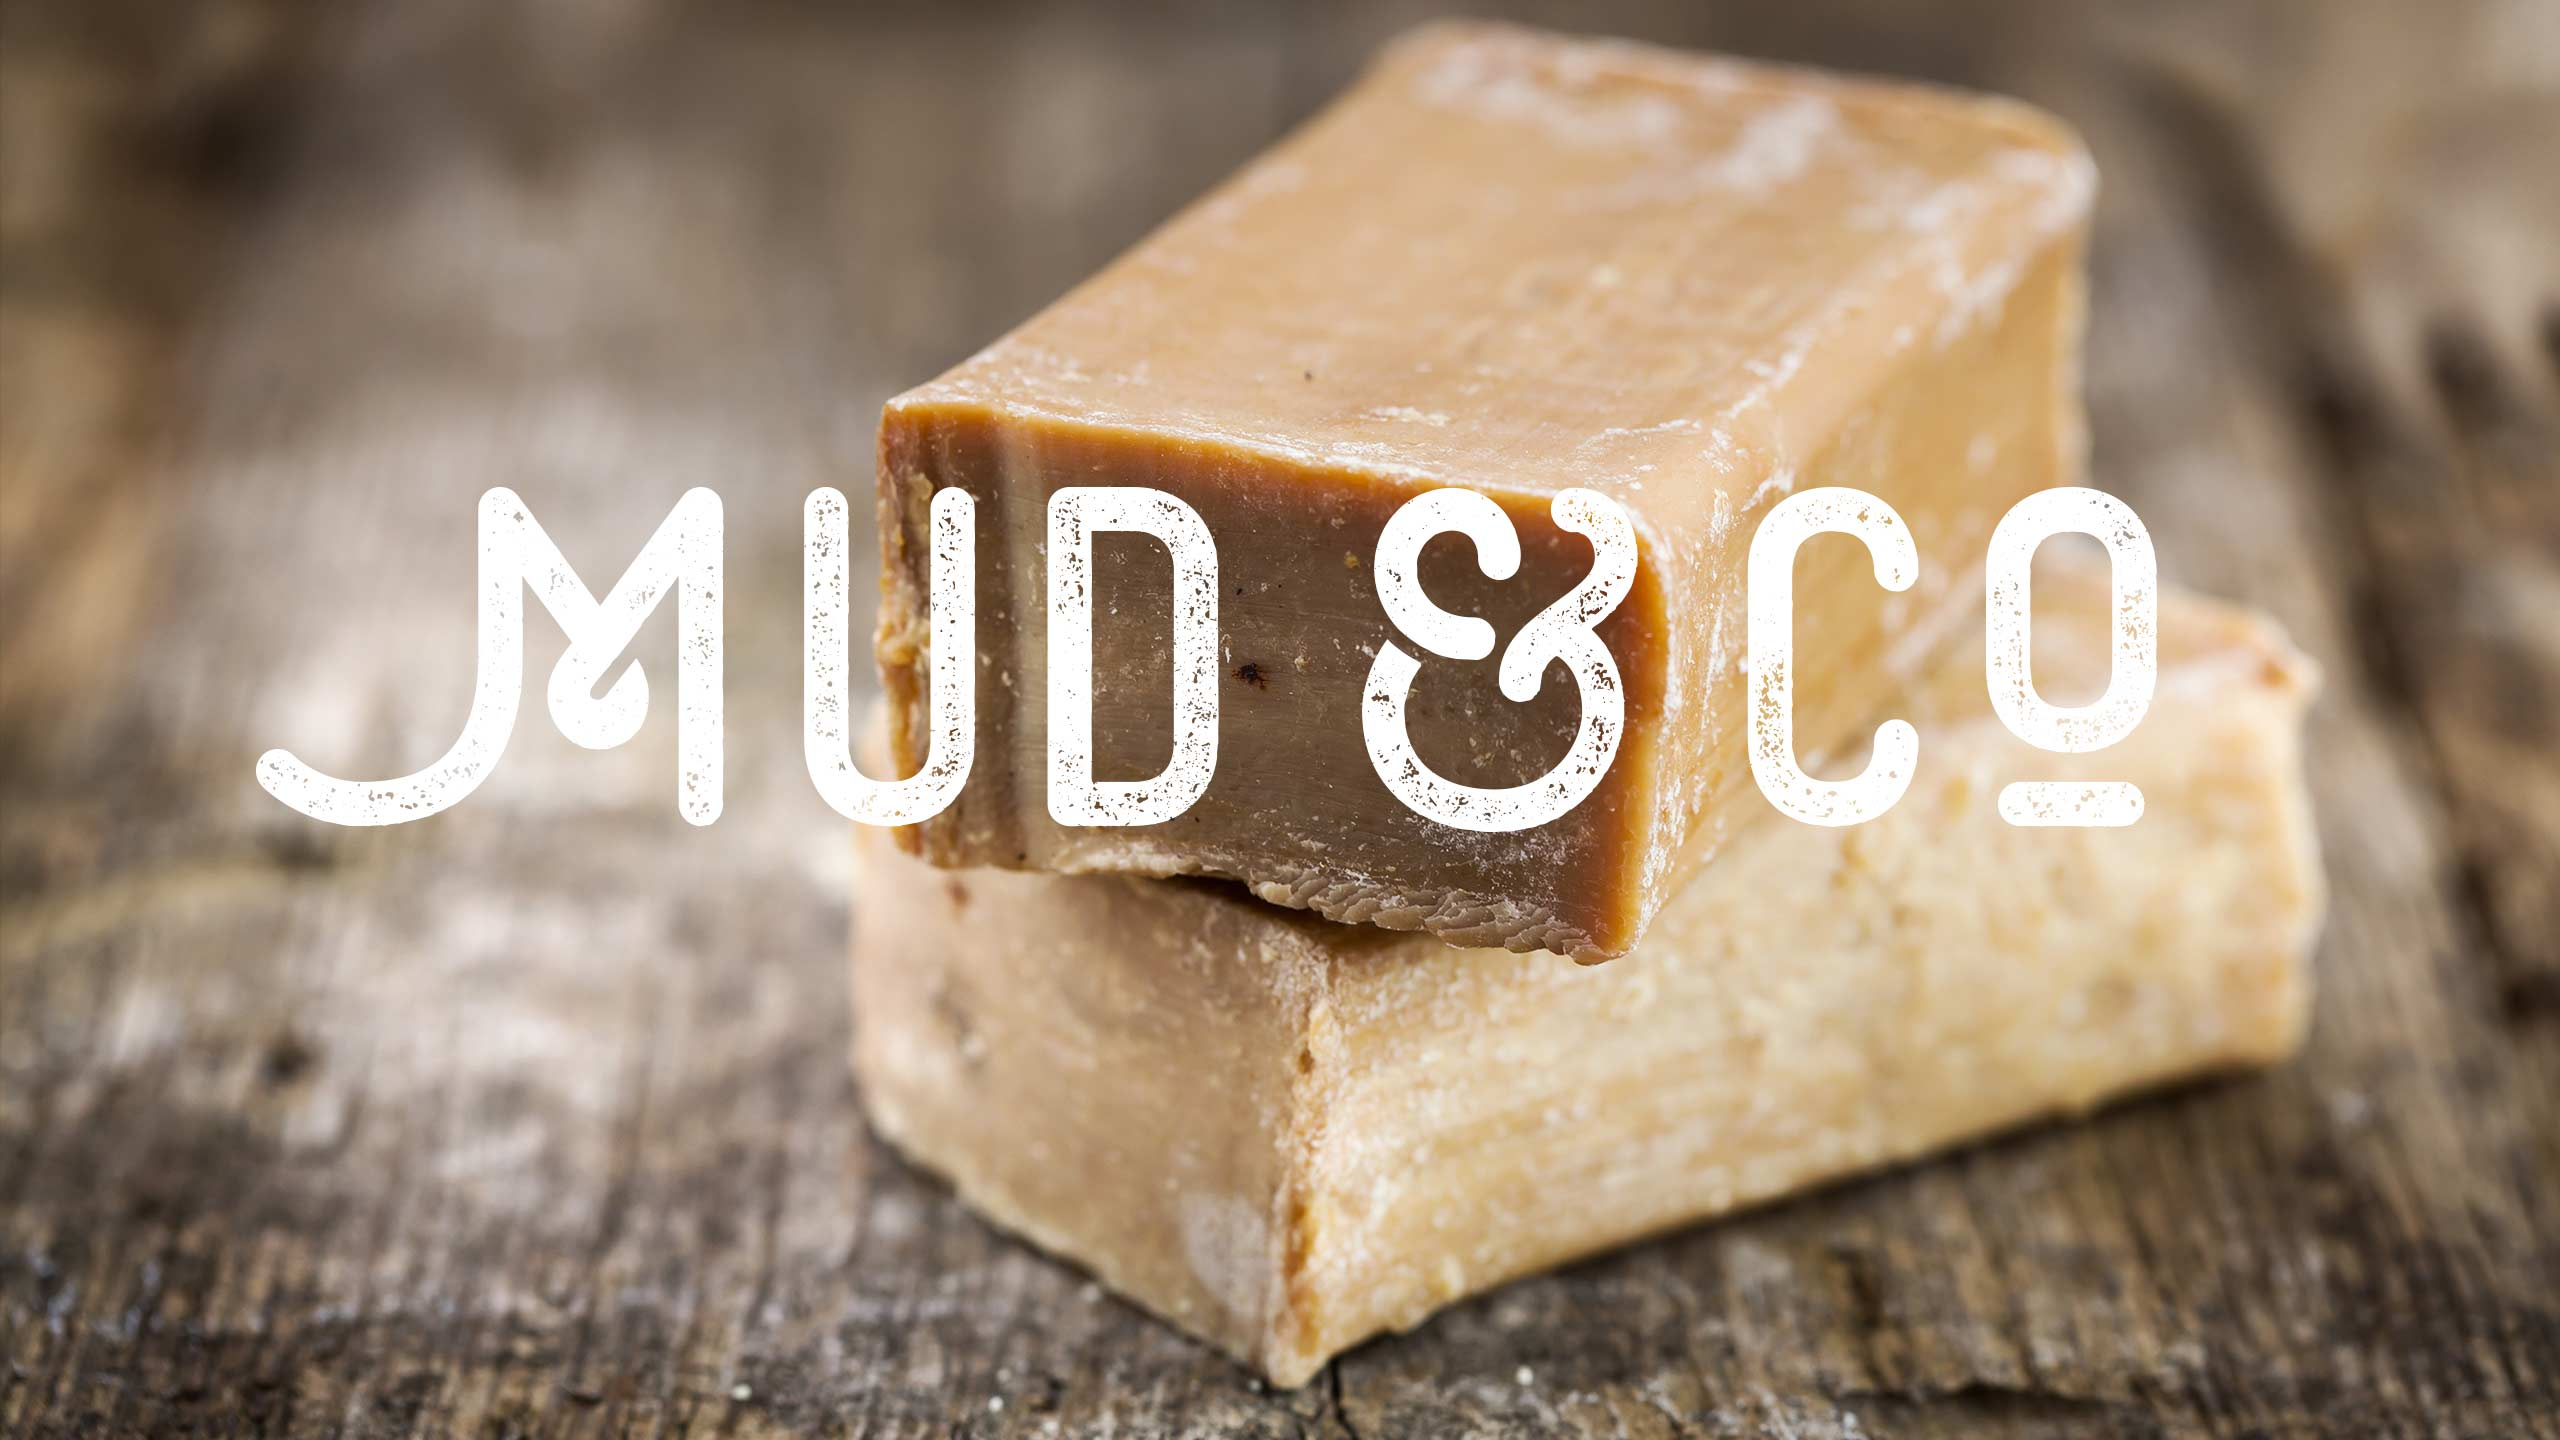 Final logo on soap bars for Mud & Co